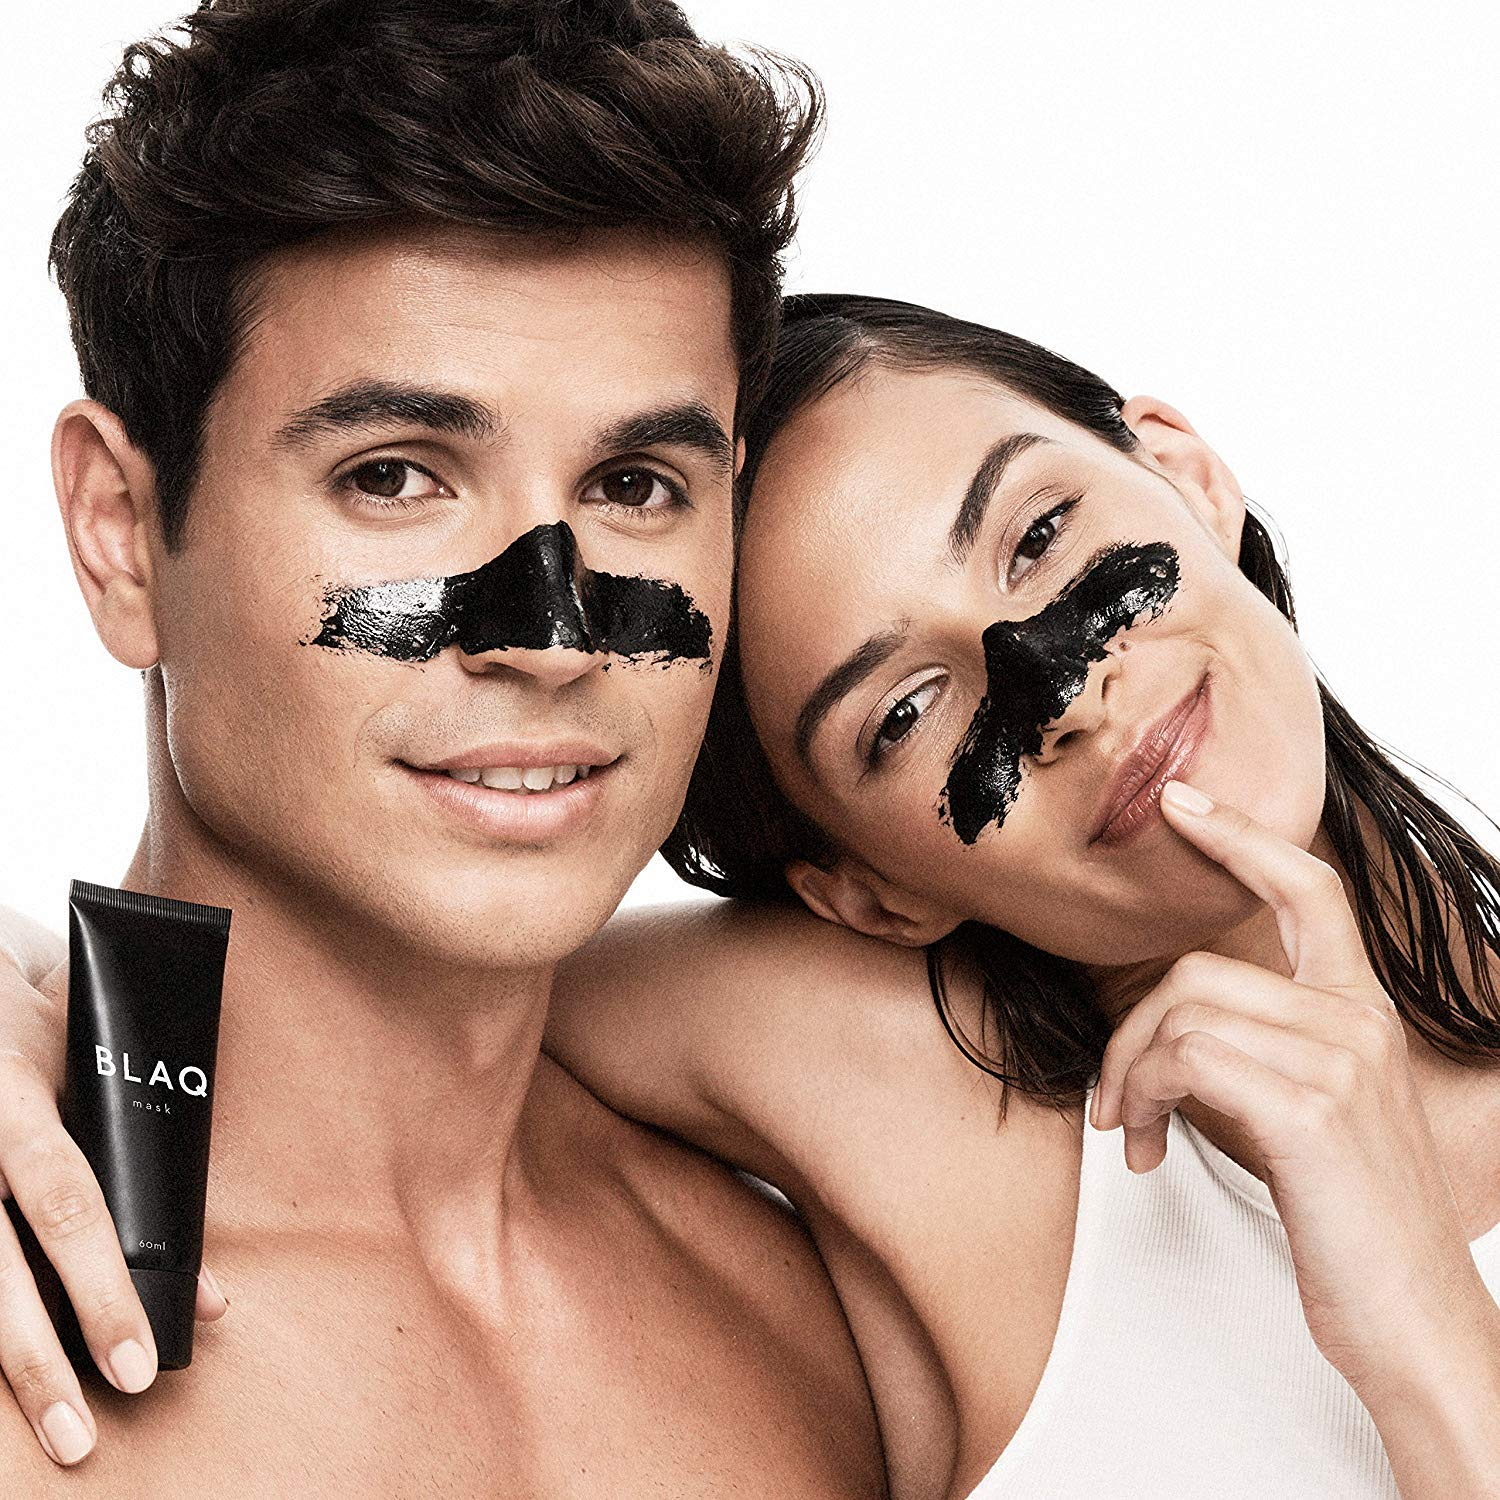 Activated Charcoal Peel Off Face Mask by BLAQ - Deep Cleansing, Exfoliating, Blackhead and Acne Remover - 60ml